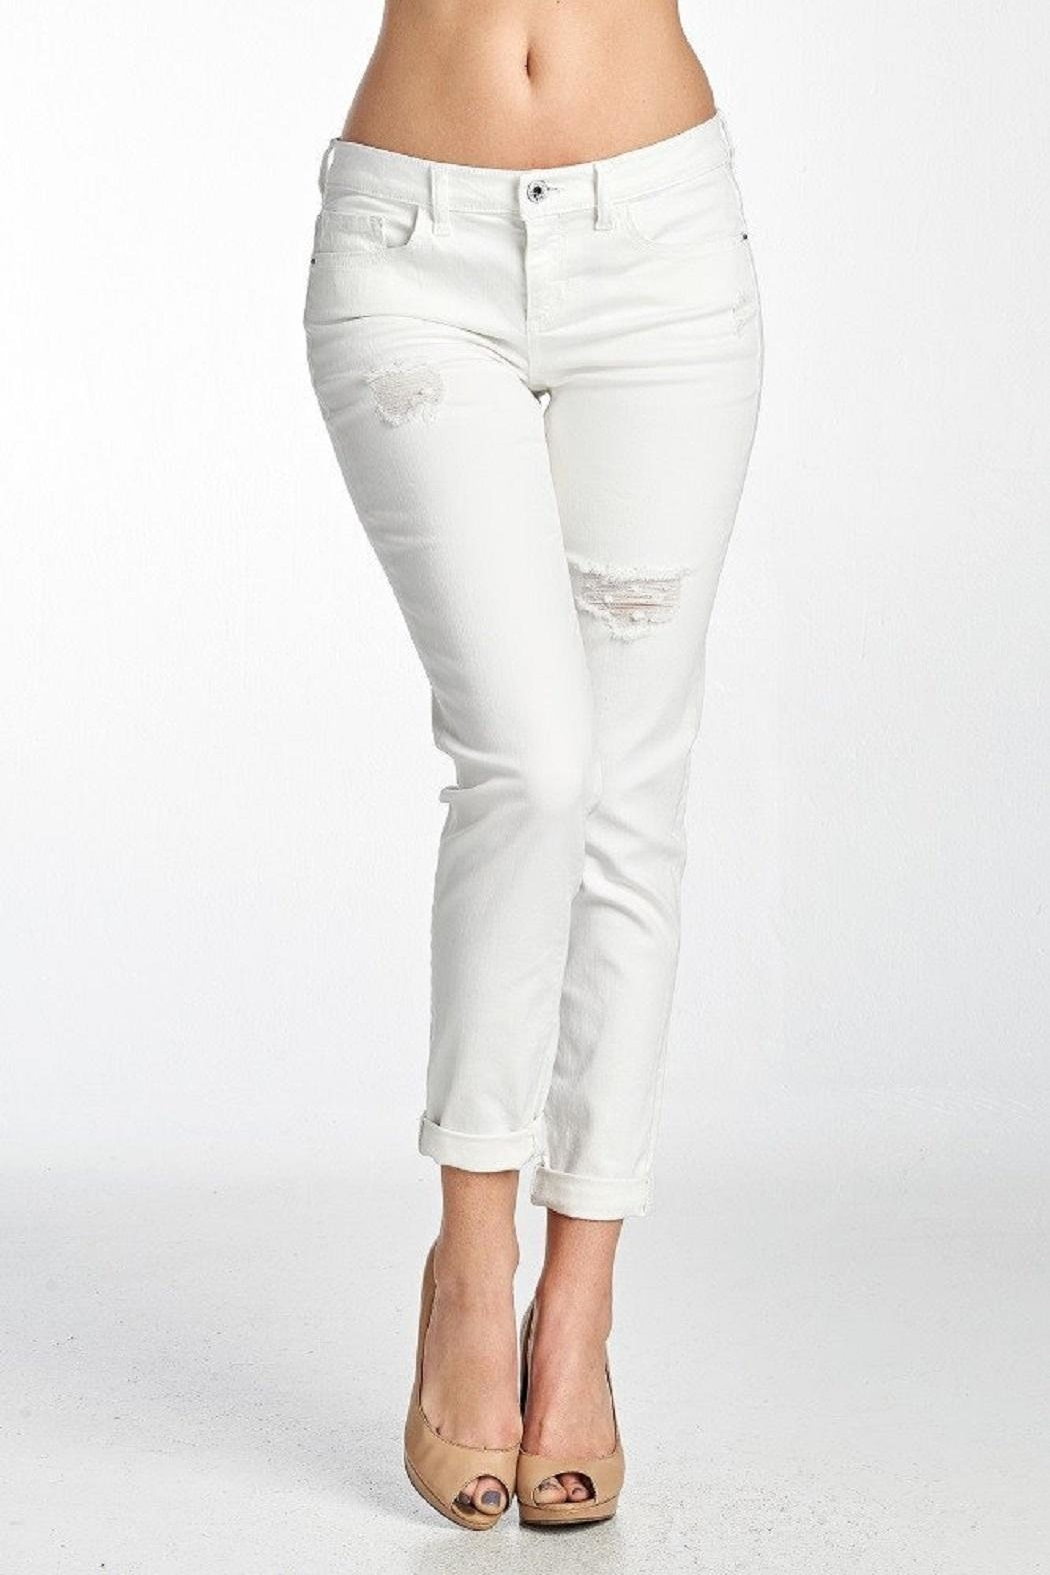 Sexy white jeans